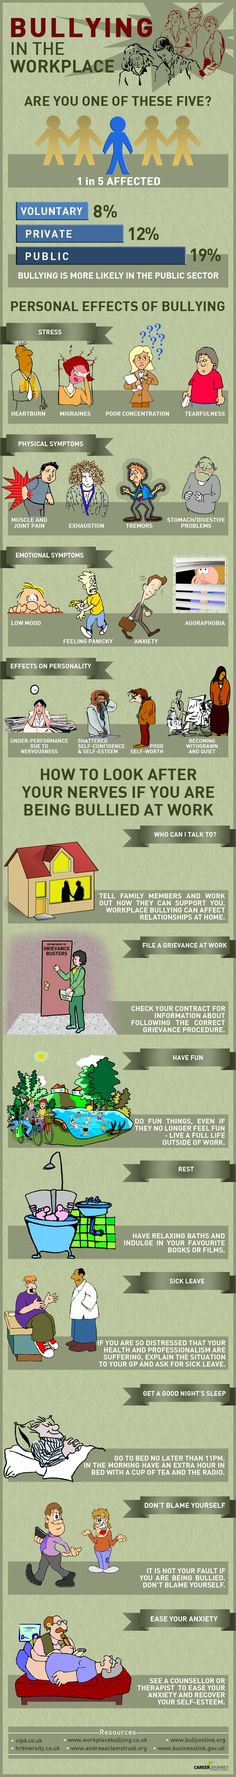 """Bullying In The Workplace - Are You One Of The 1 In 5 Affected?"" #HR do you have diversity training in place to help prevent these ""bullies""?"